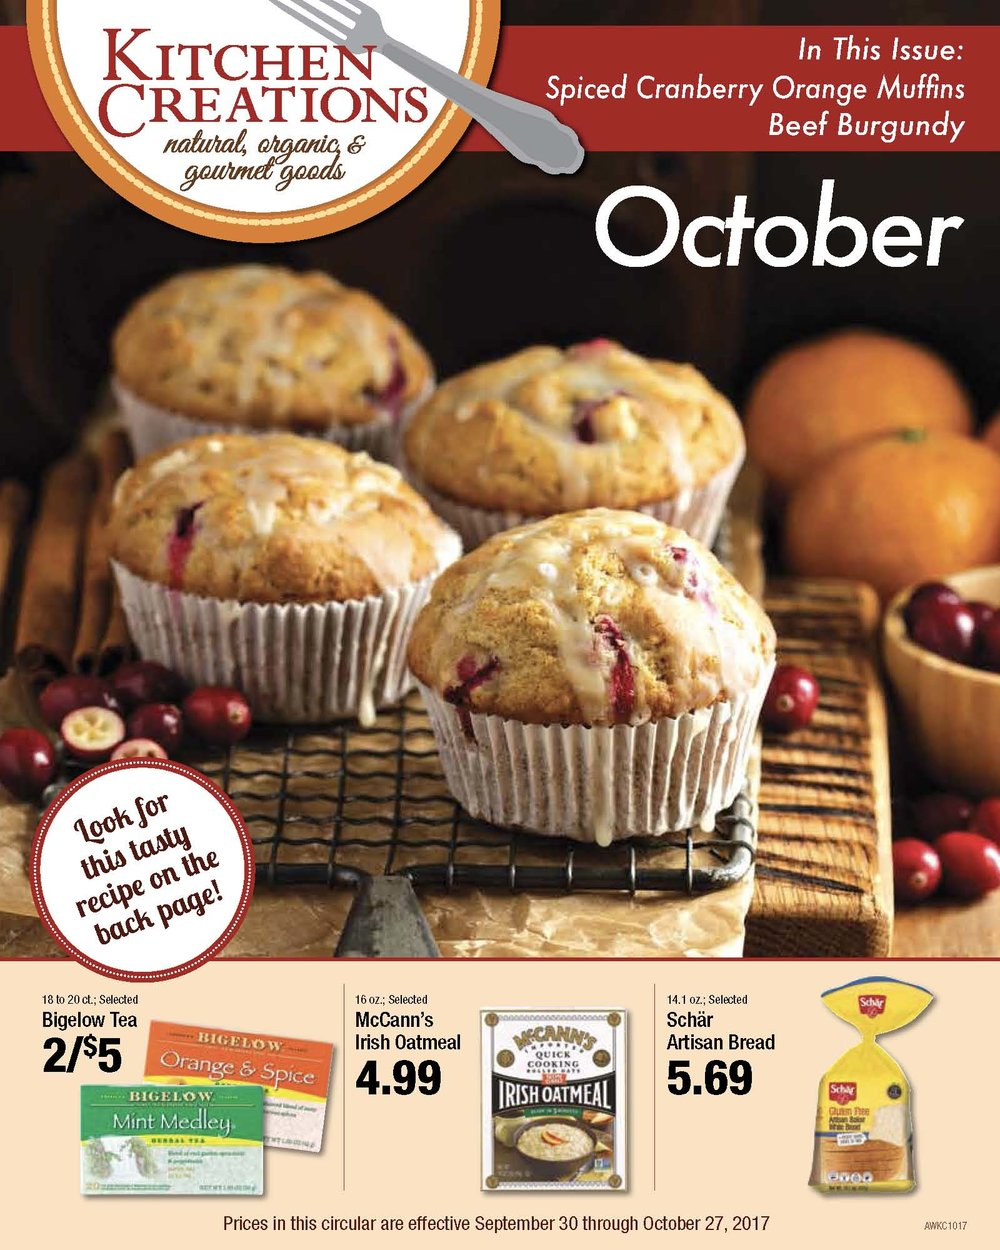 KITCHEN CREATIONS AD OCTOBER 2017 PDF LEDYARD_Page_1.jpg